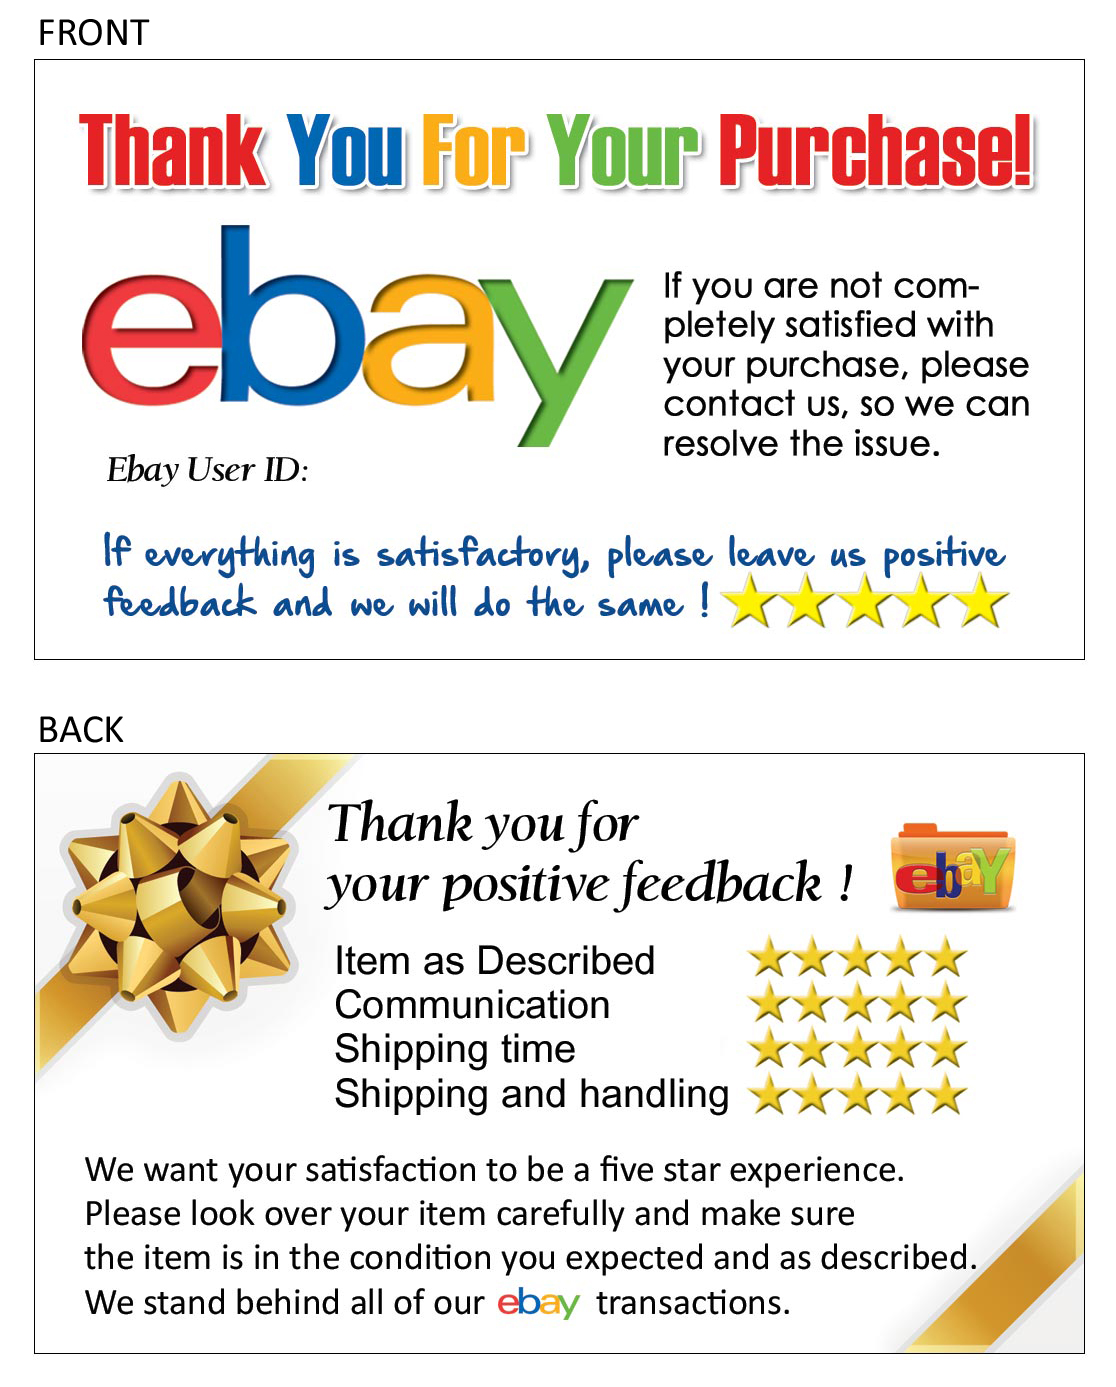 100 Thank You business card for Ebay Seller FREE SHIPPING